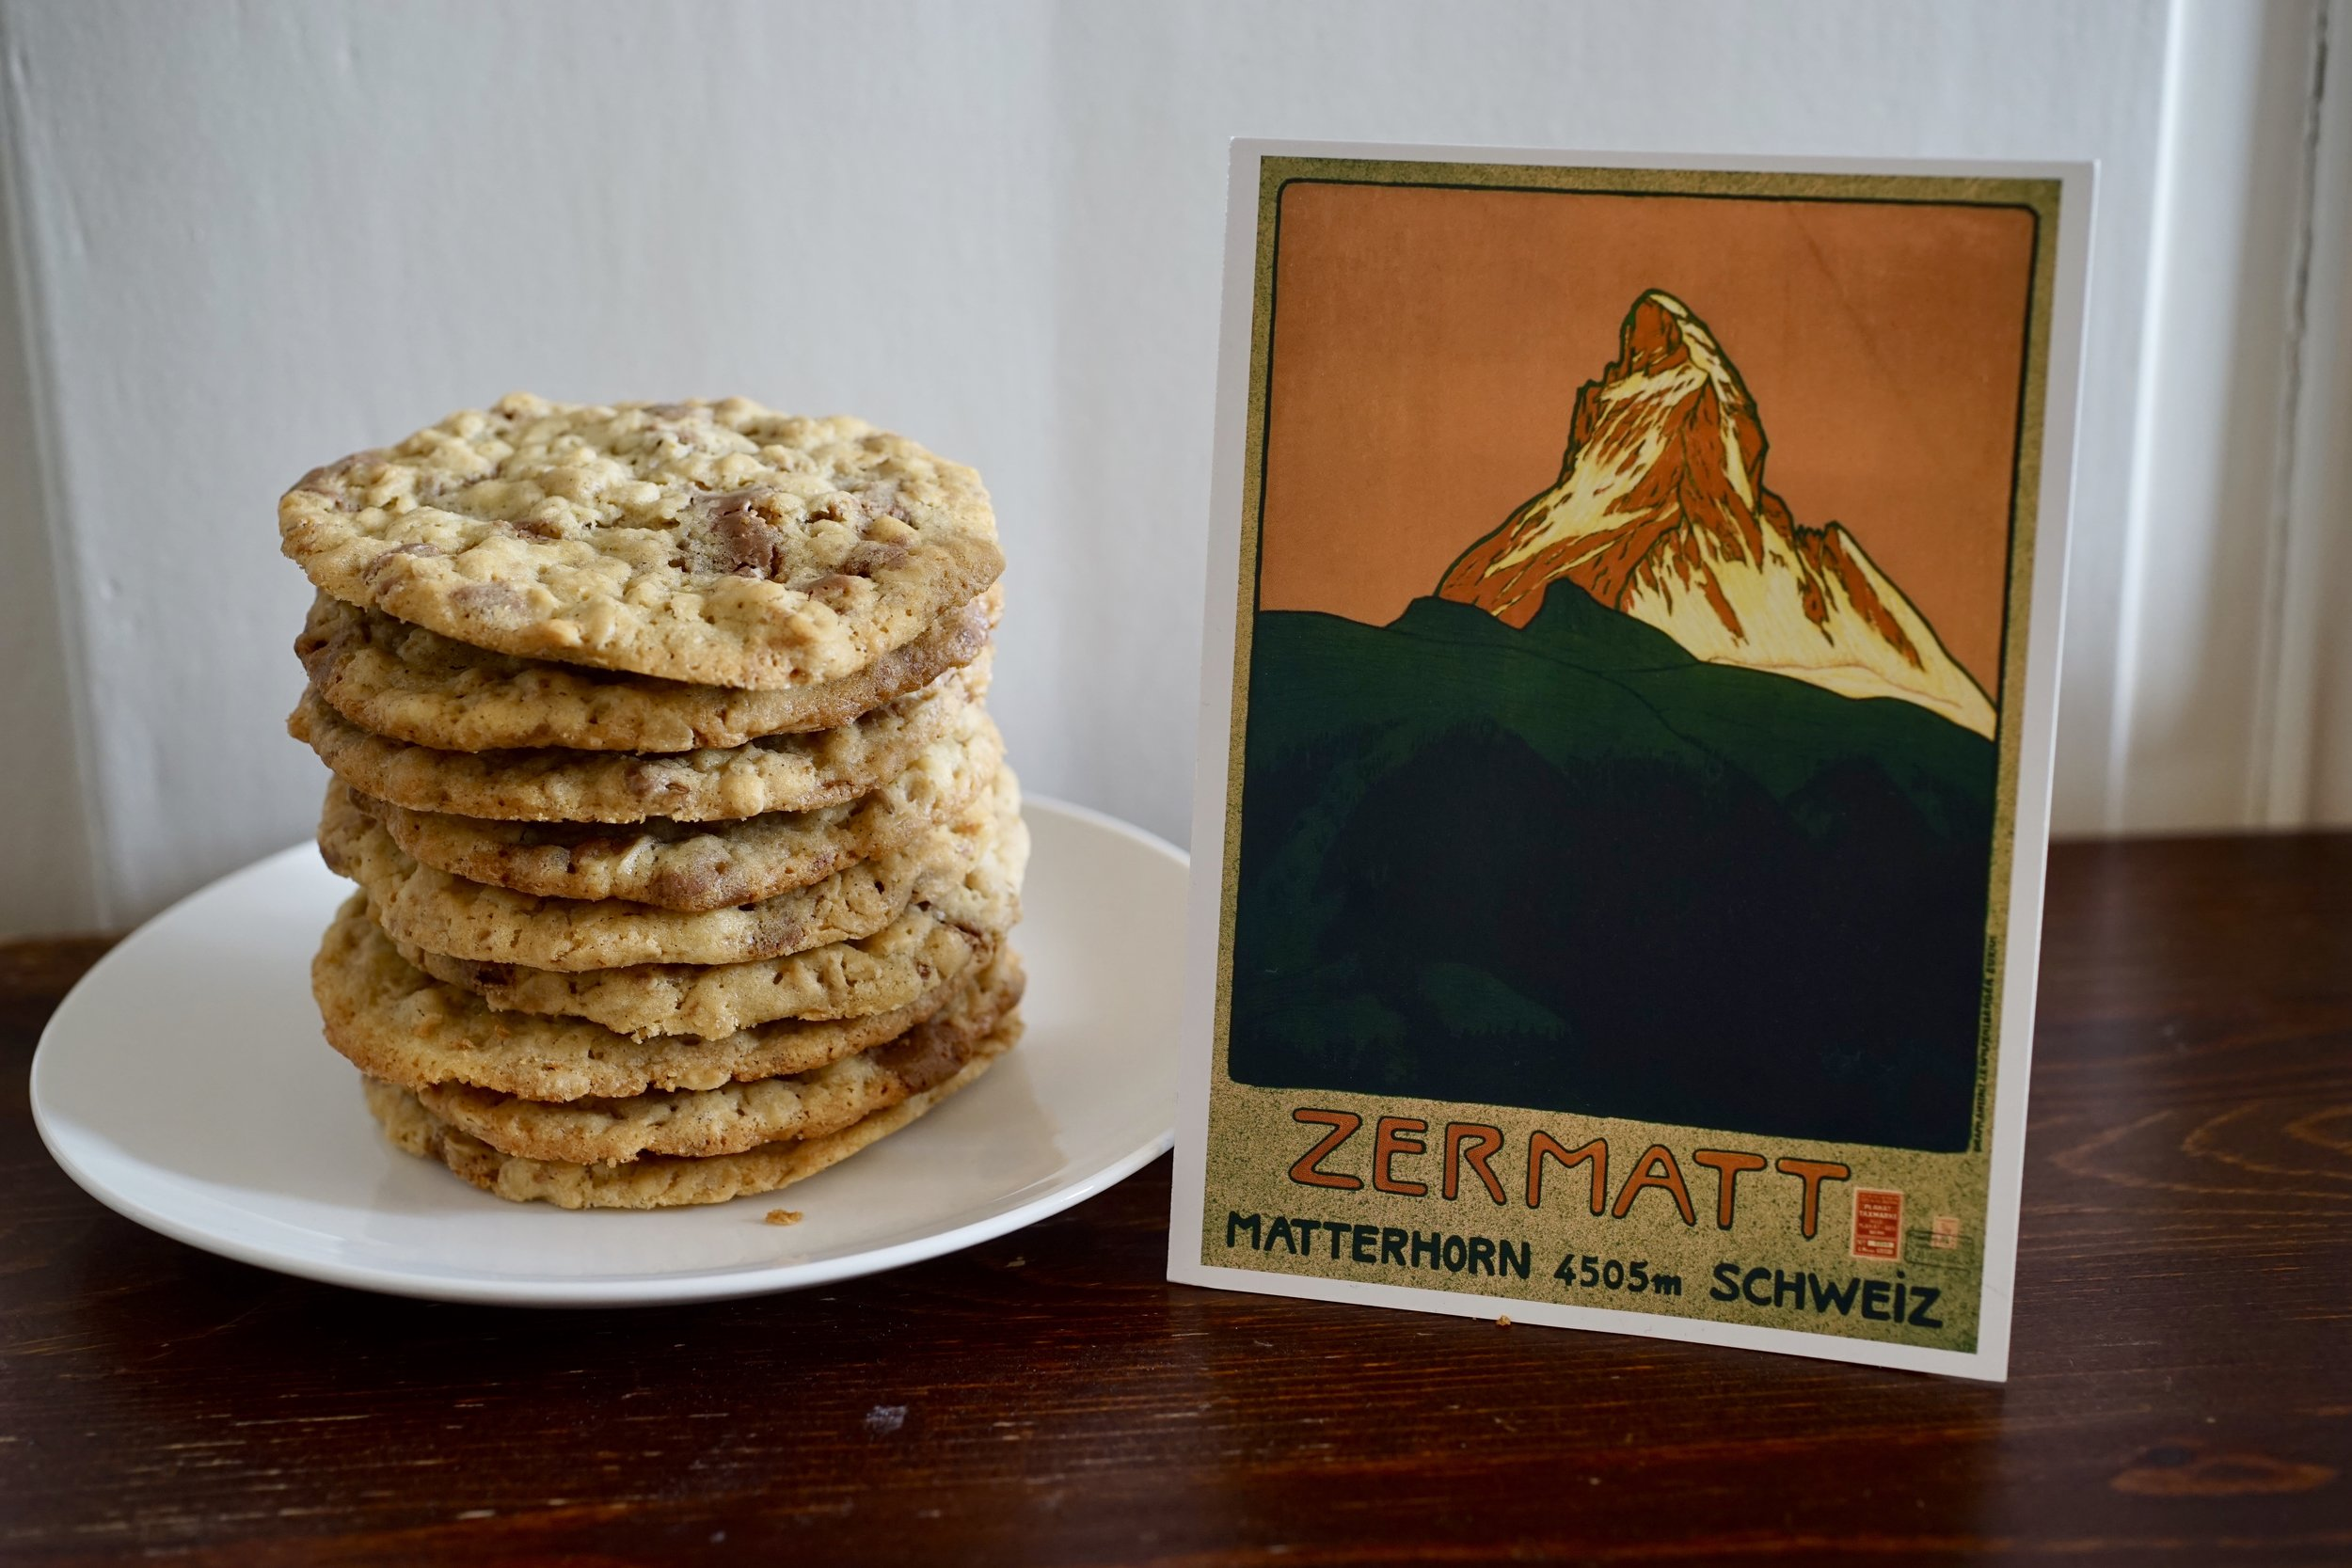 Is the shape of the Toblerone inspired by Switzerland's most famous peak? No!